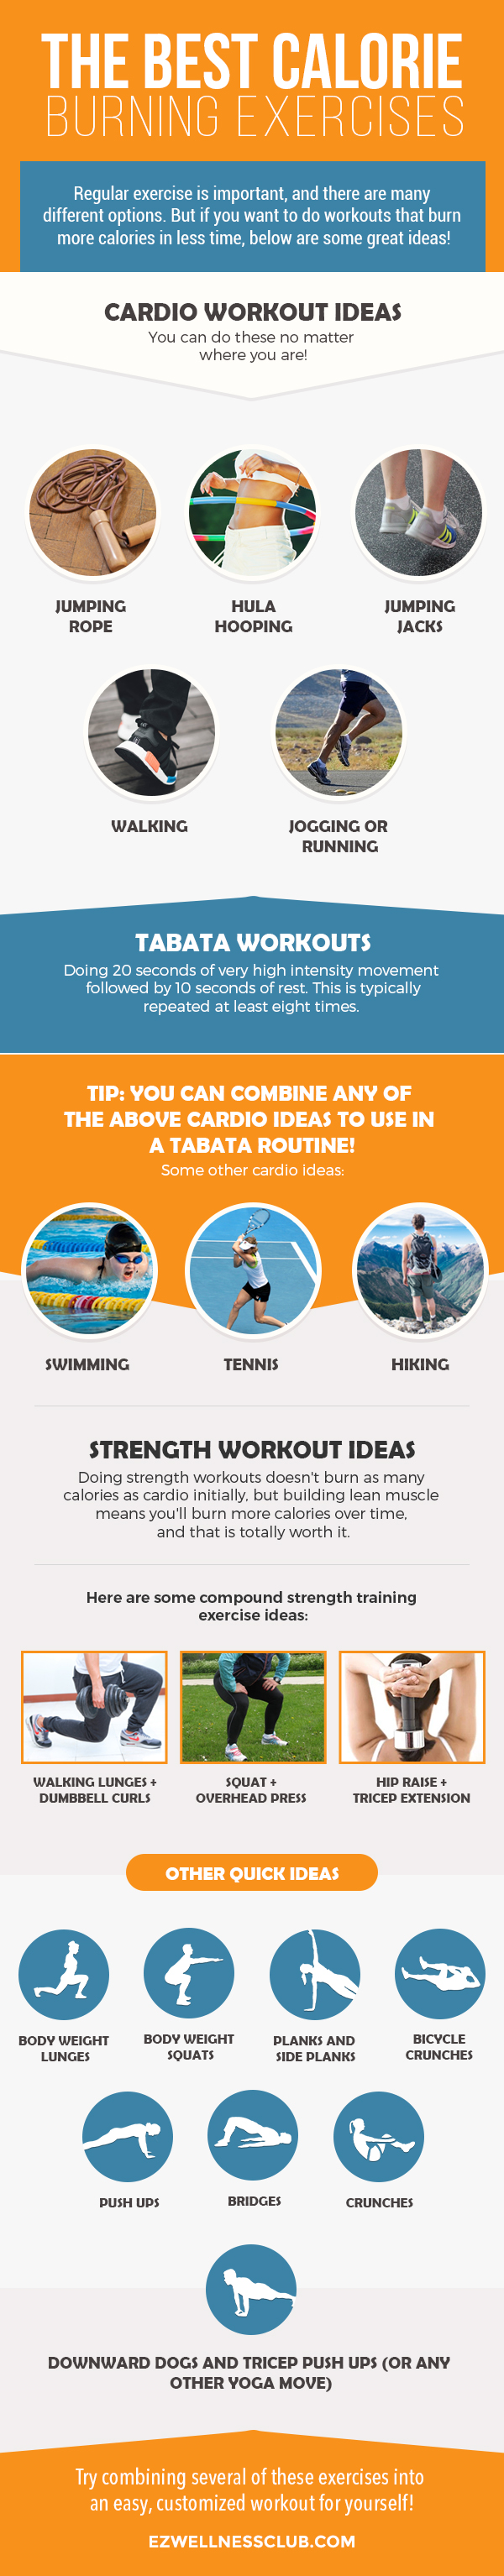 THE BEST CALORIE BURNING EXERCISES